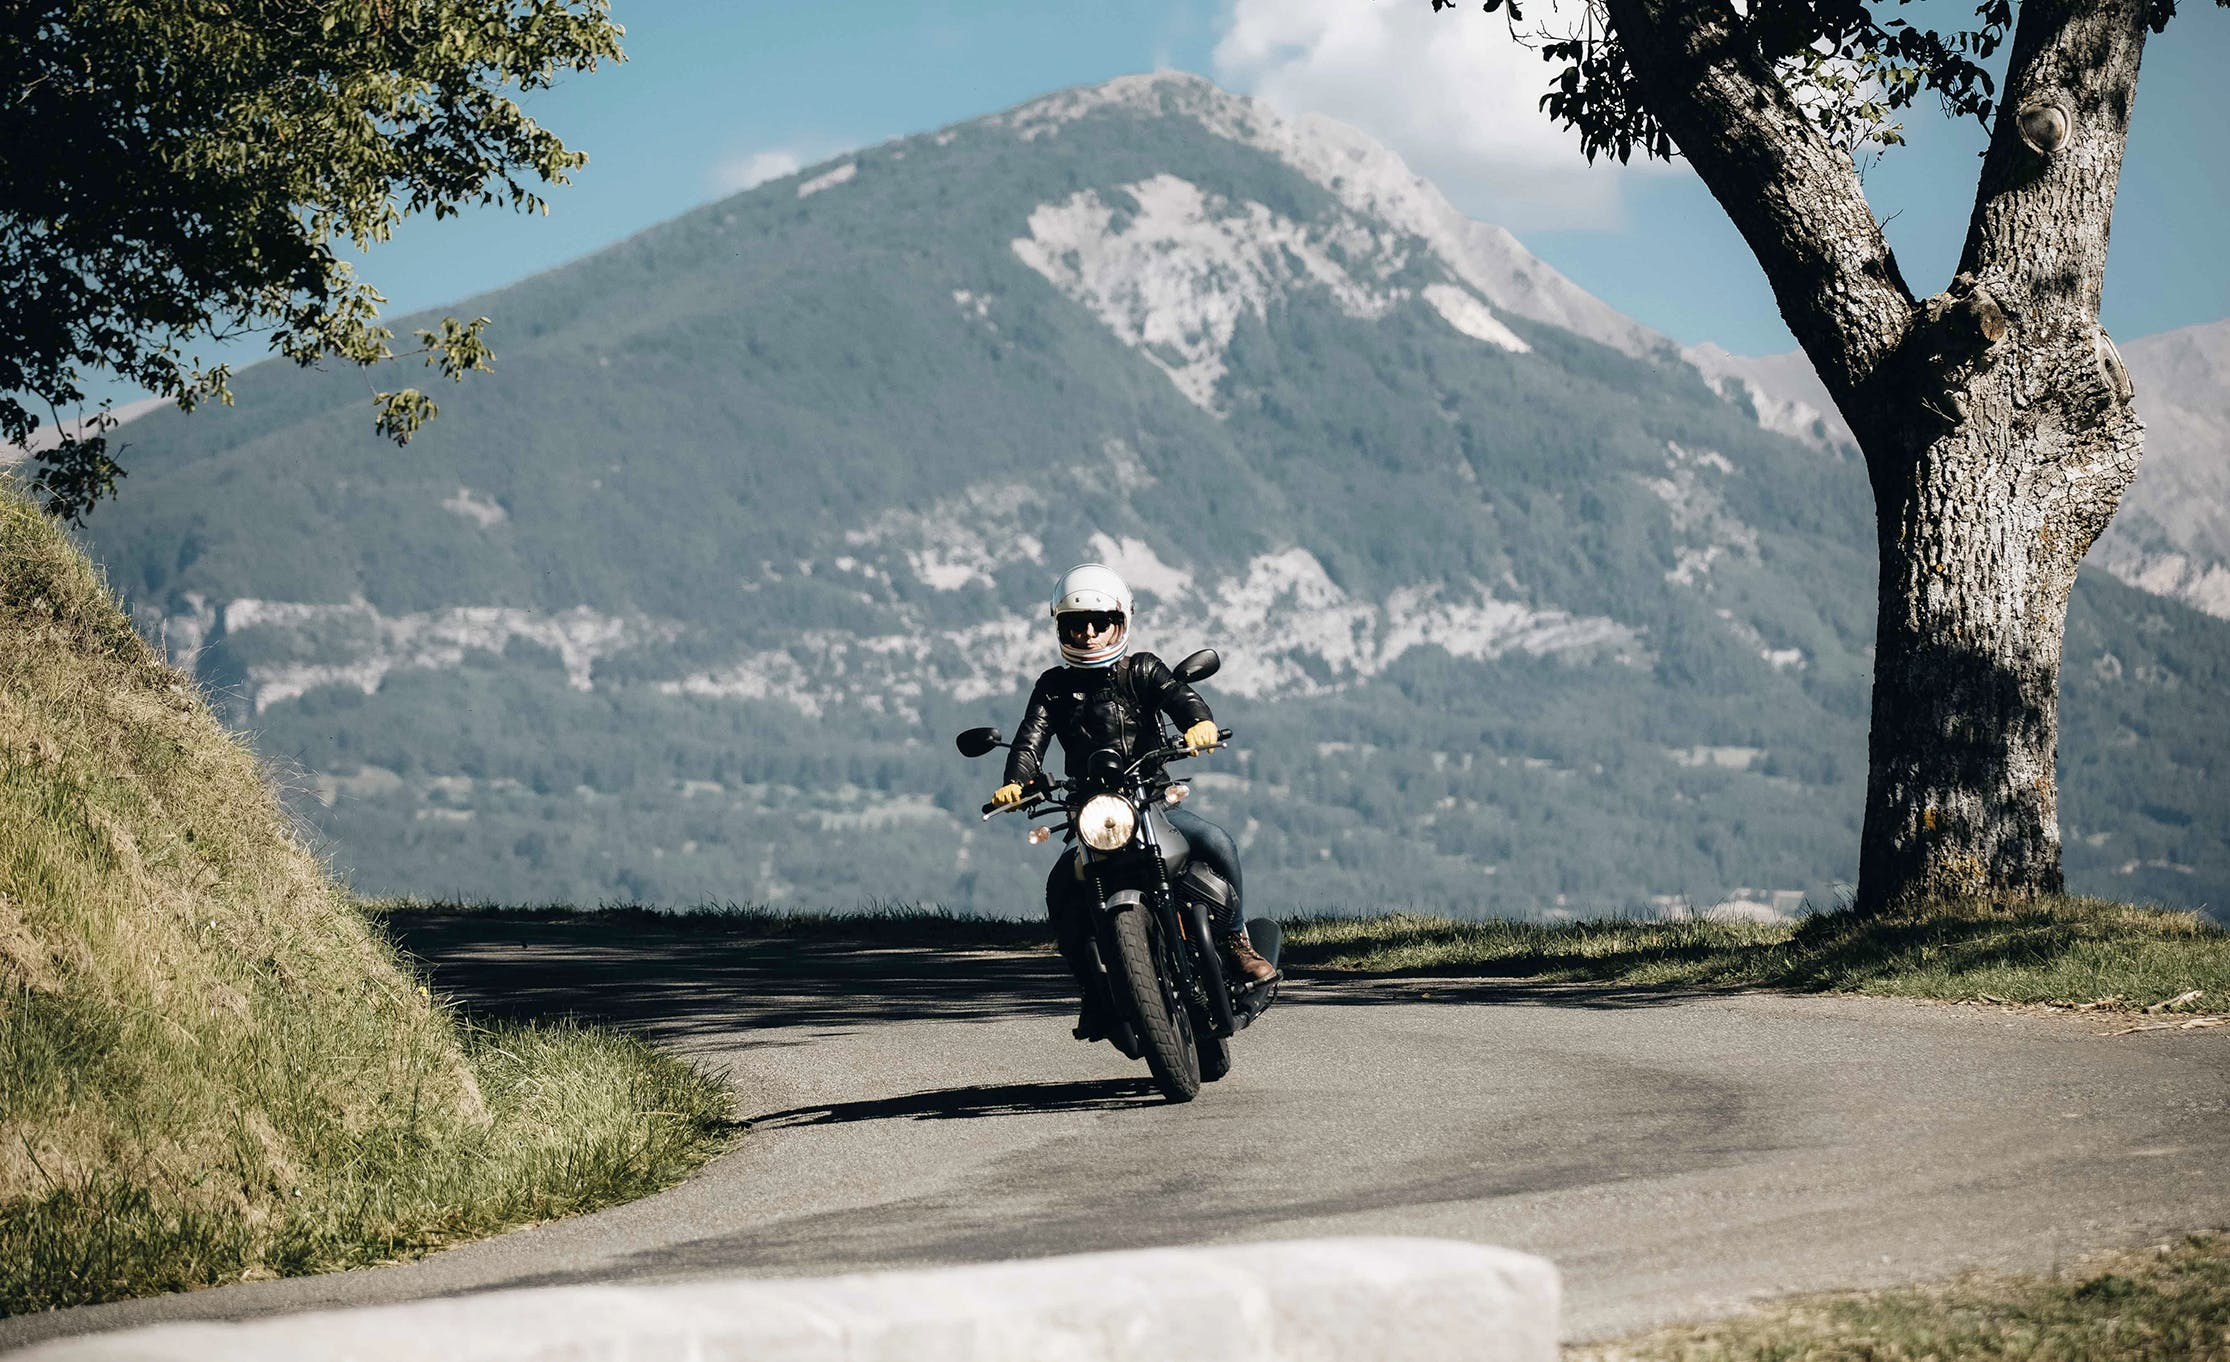 The road to the Alpes Aventure MotoFestival